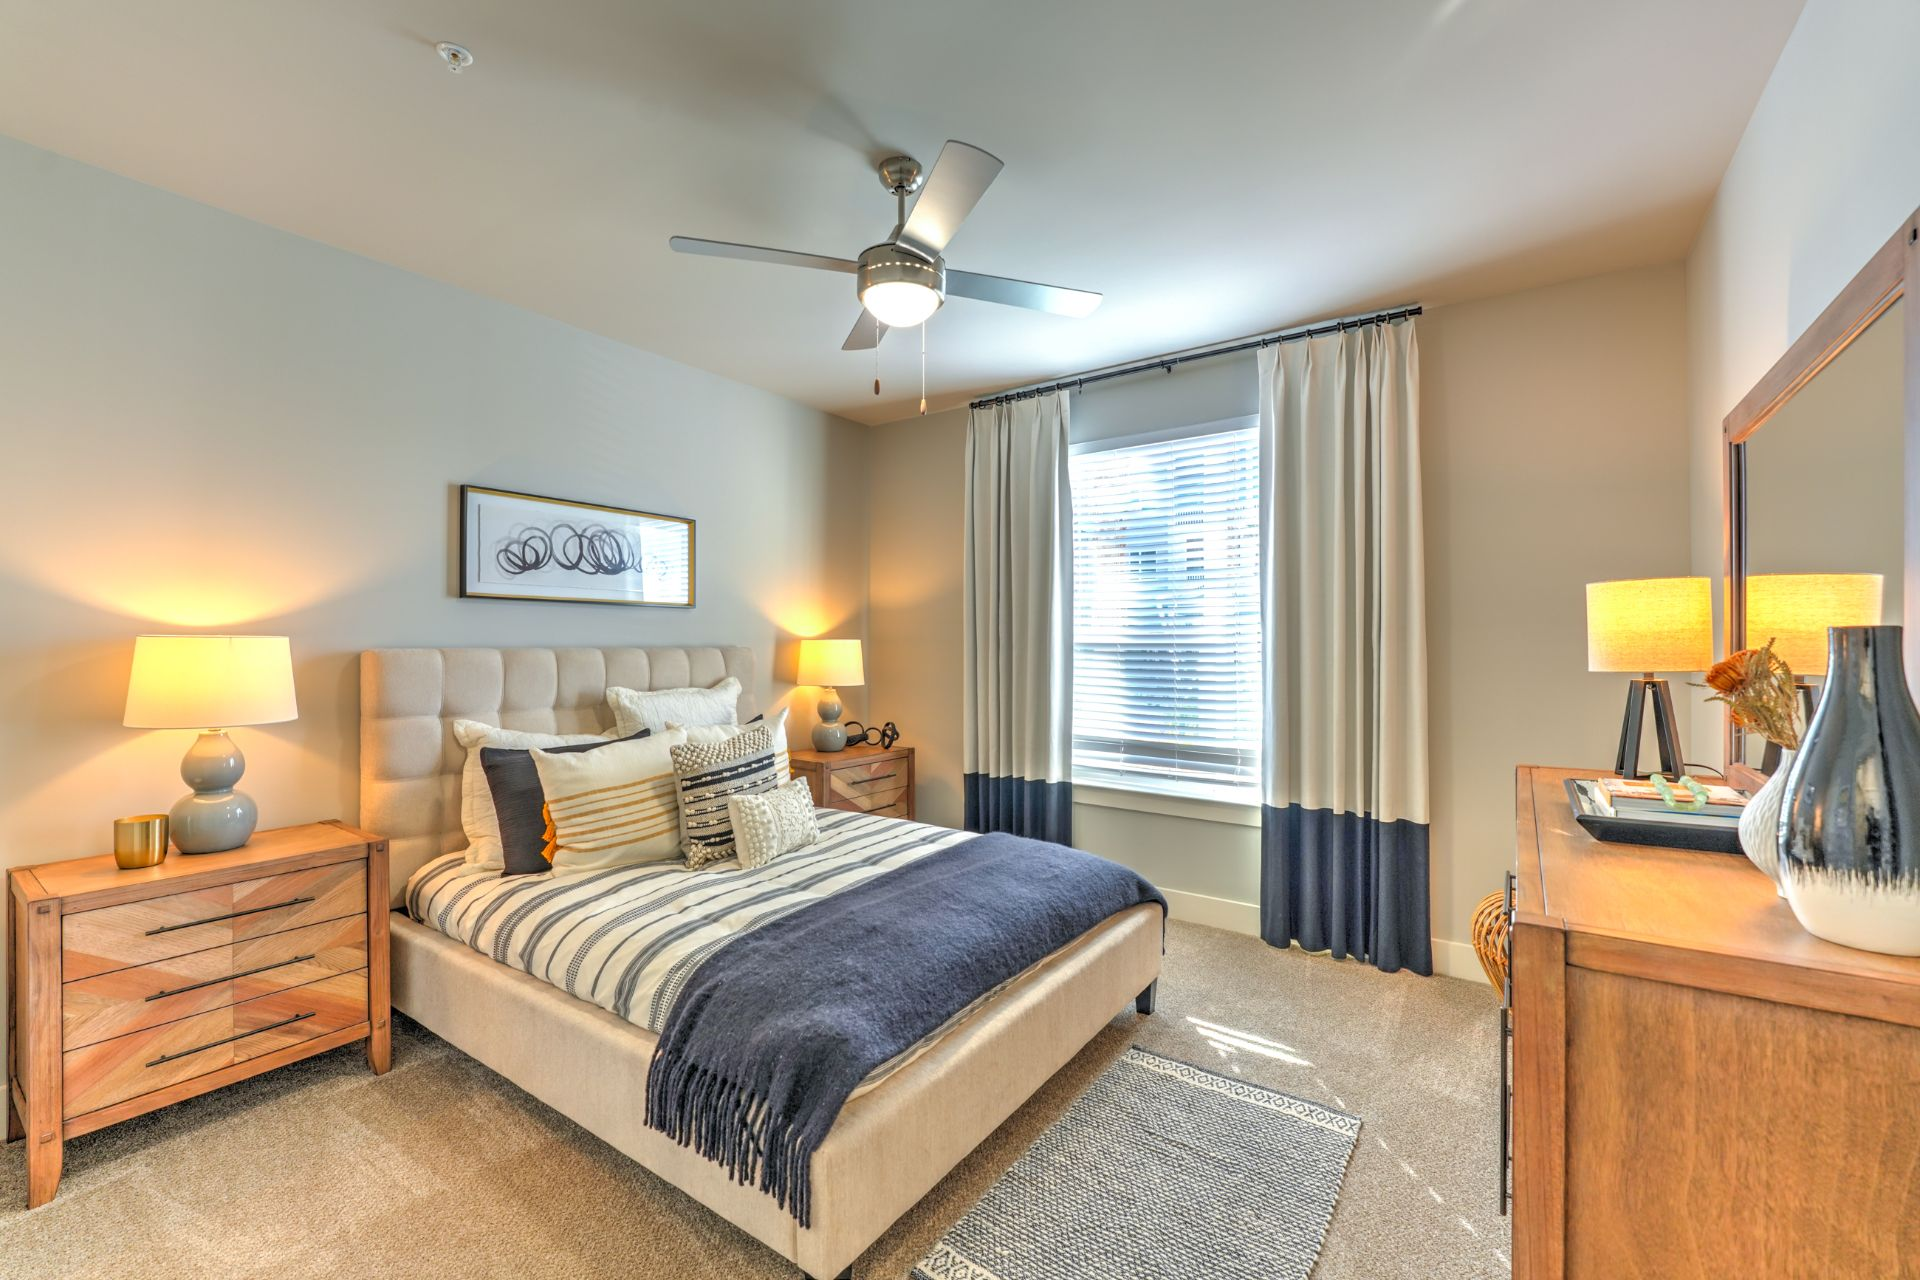 The Lofts at Wildlight - Amenities